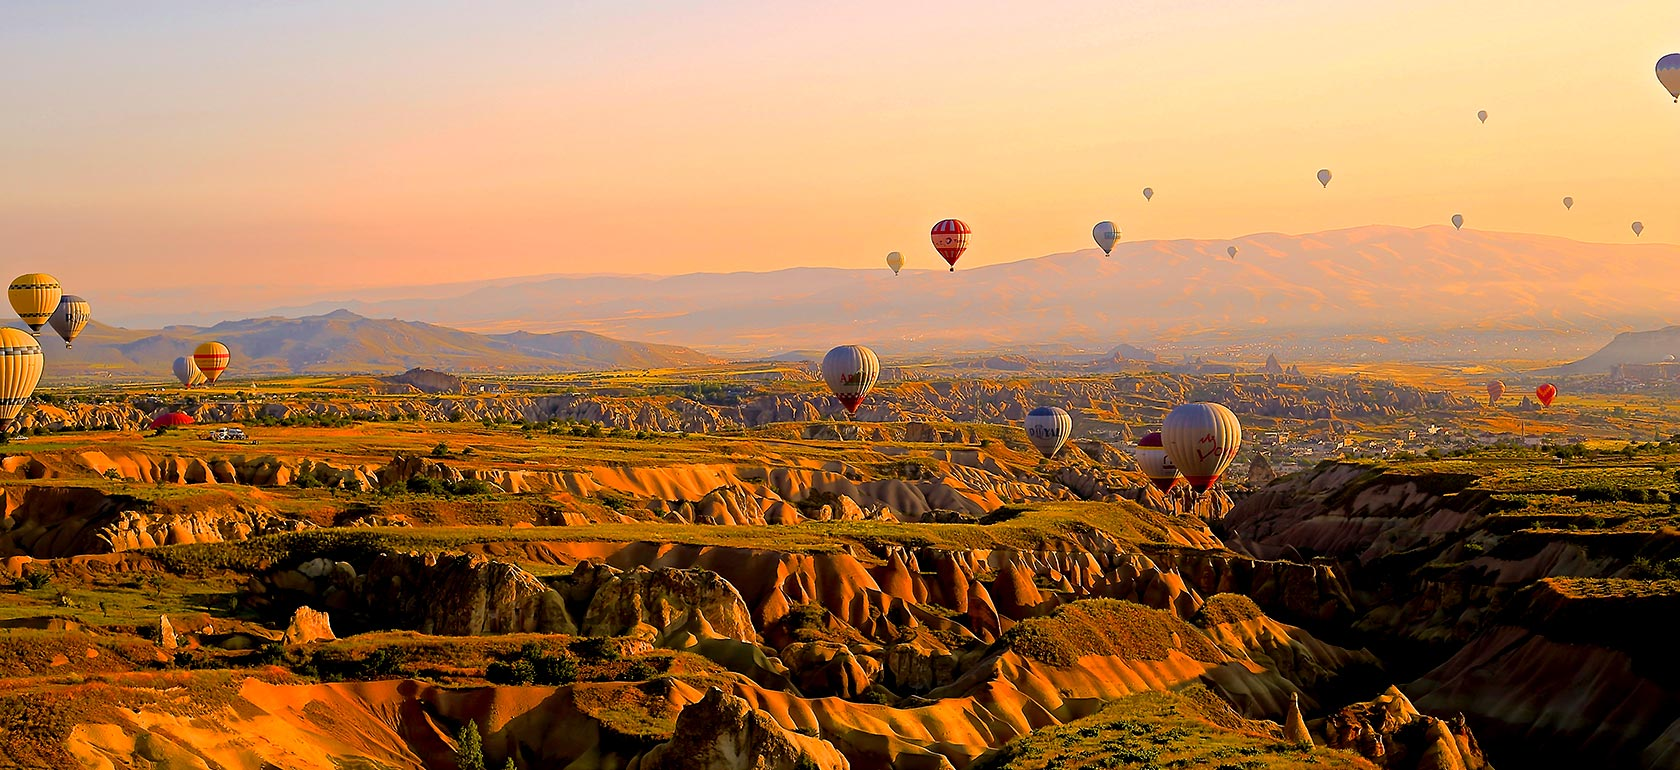 Balloon Tour Over The Fairy Chimneys